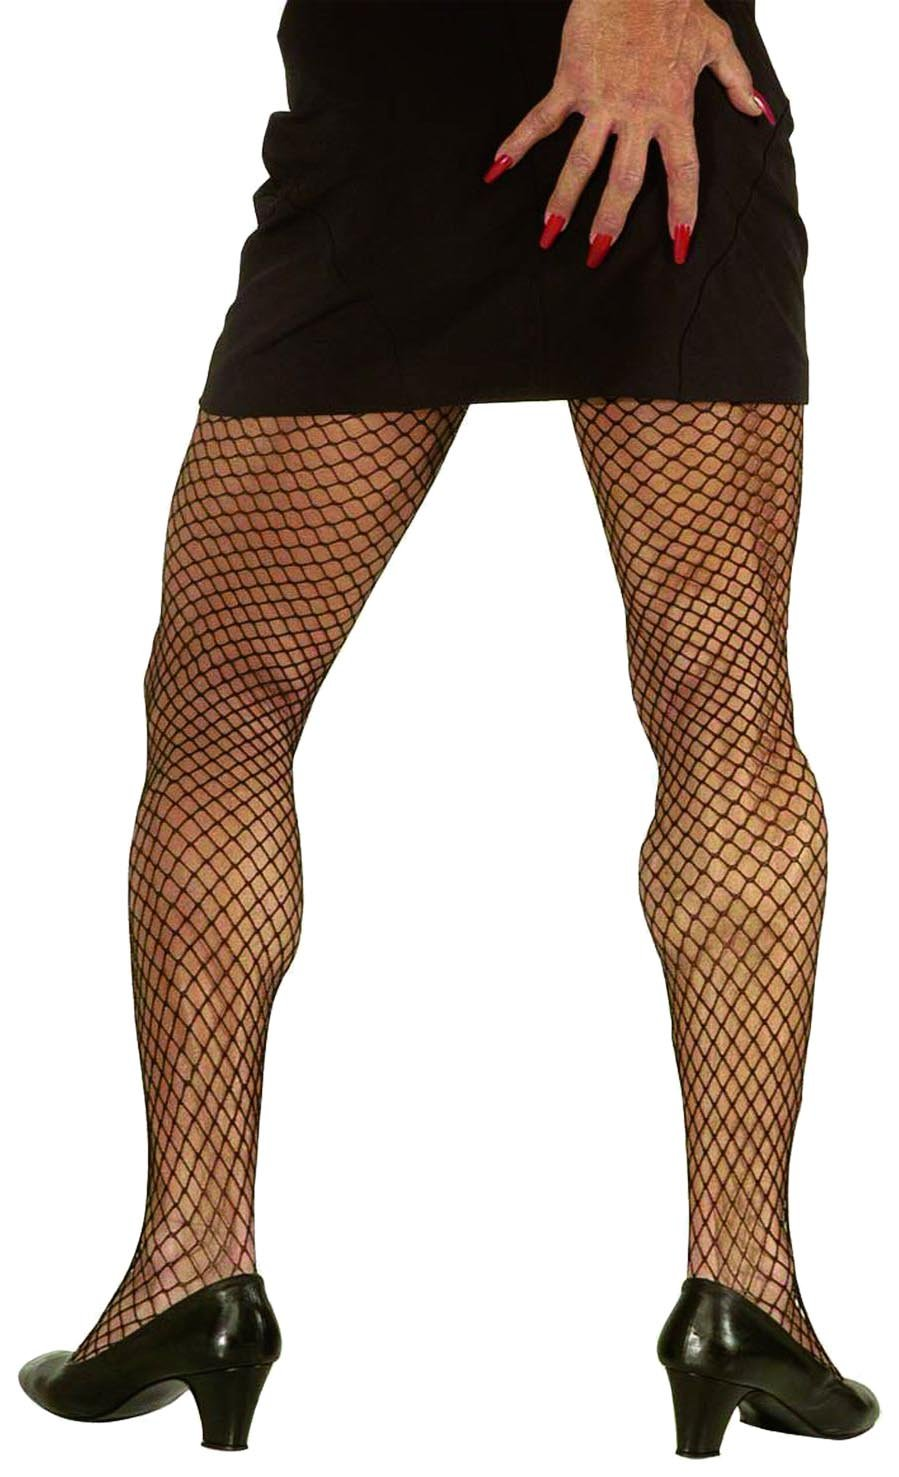 xL Black Wide Fishnet Pantyhose Accessory Extra Large for Lingerie Fancy Dress